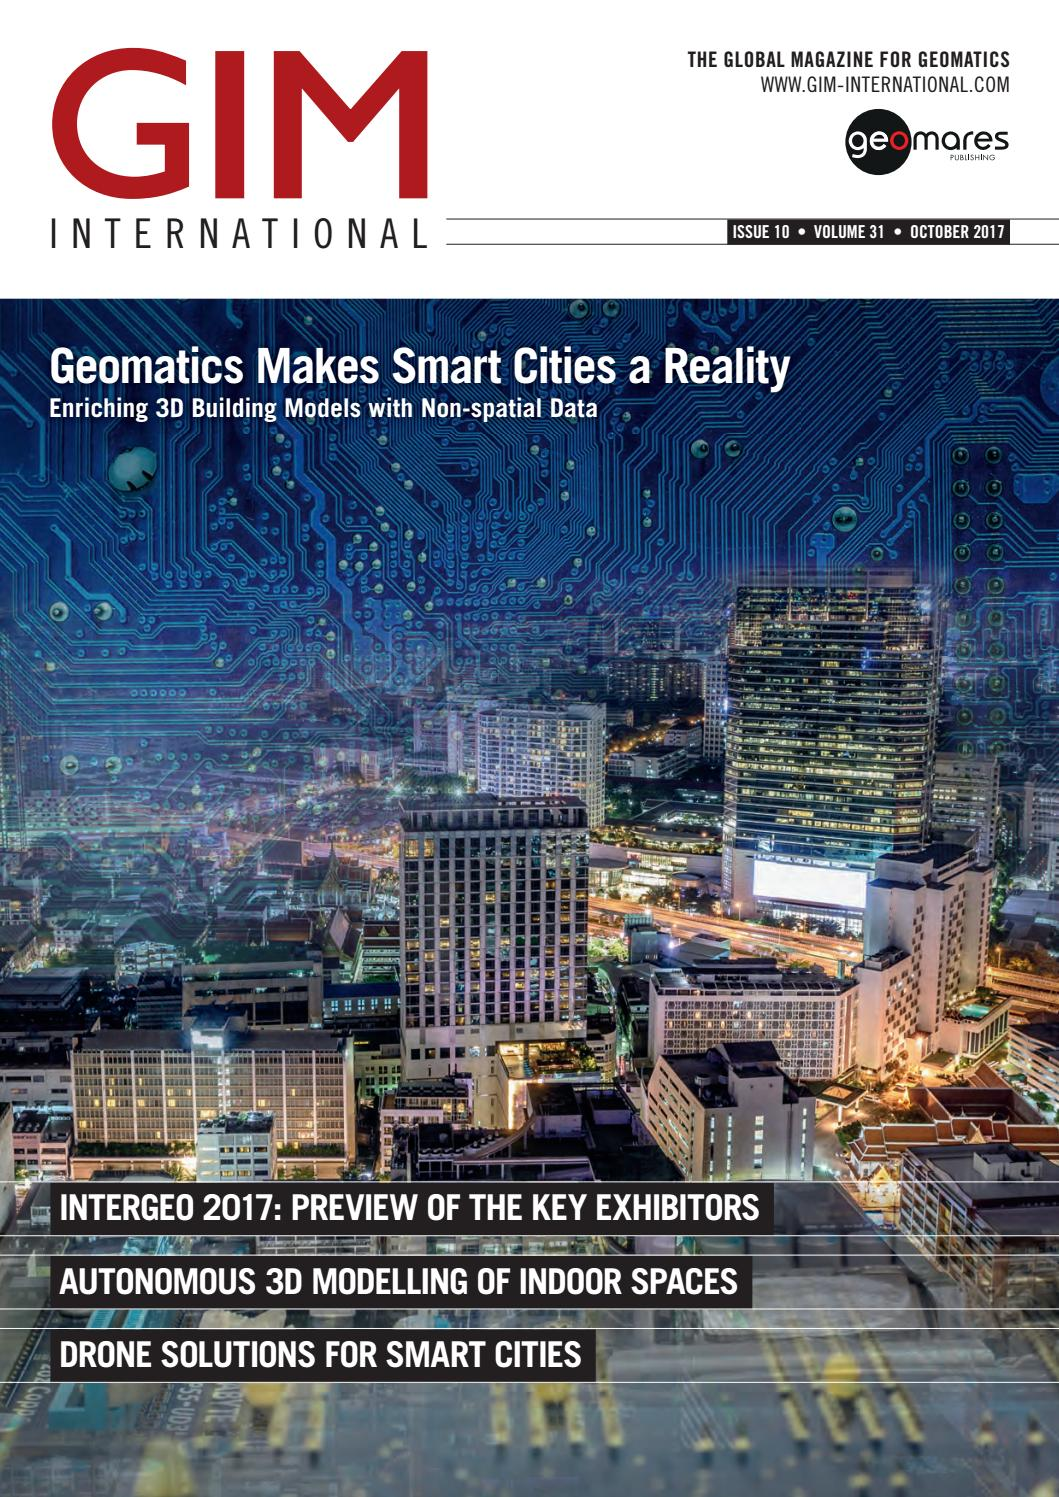 Gim international october 2017 by geomares publishing issuu for International builders show 2017 exhibitors